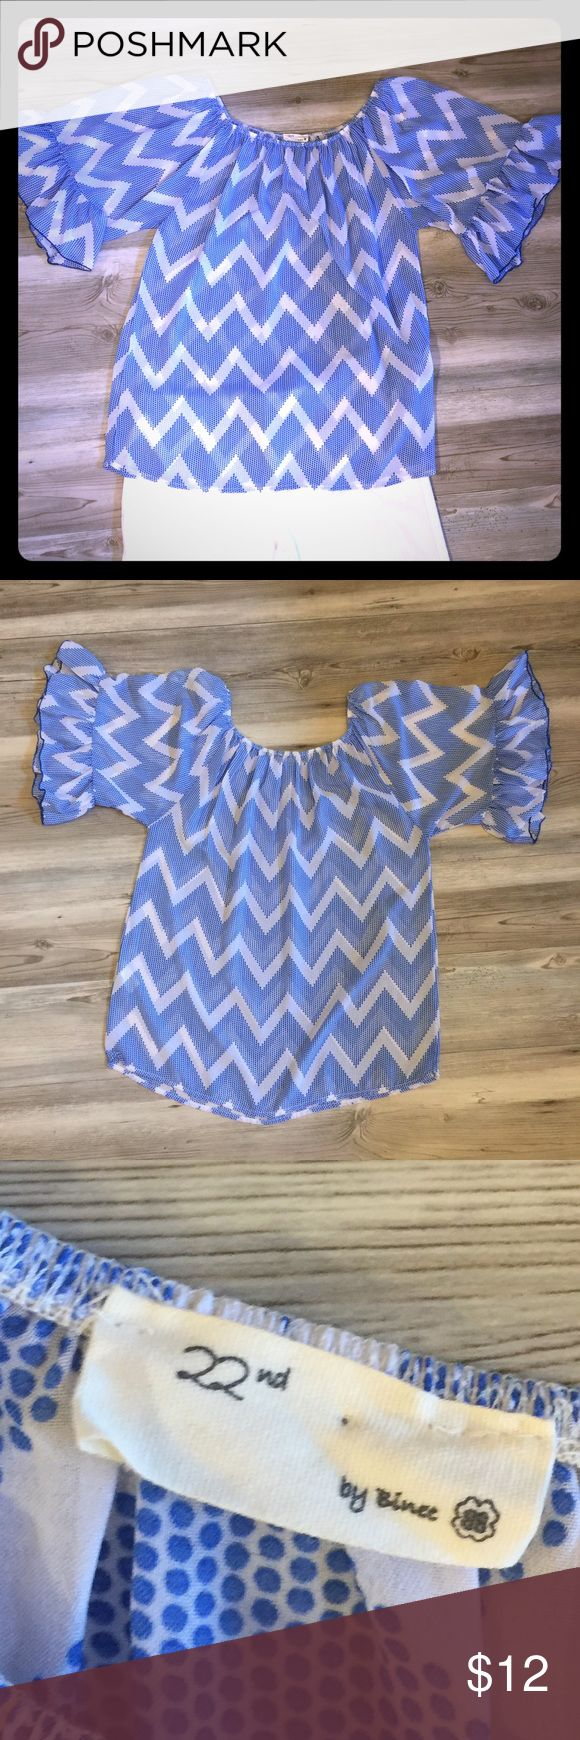 Blue & white chevron blouse Fun & flirty blue & white chevron blouse in size L!  Very versatile!!  Wear with white pant and heels or shorts and flip flops!  See pics for measurements! 22nd by Binet Tops